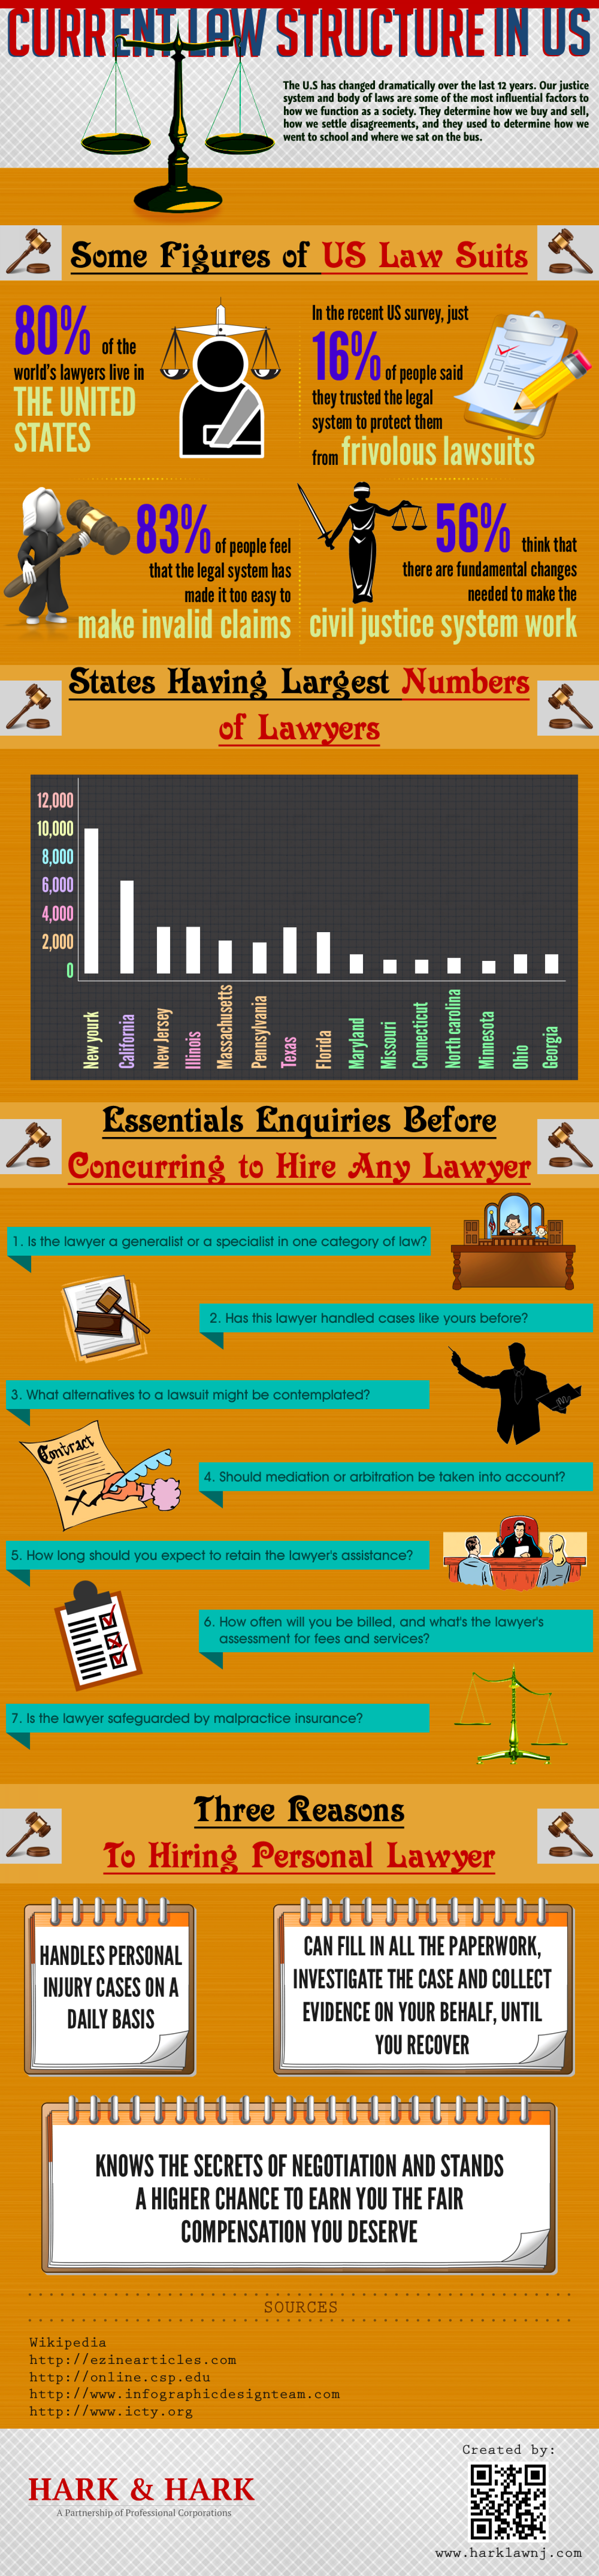 A New Jersey criminal lawyer Infographic